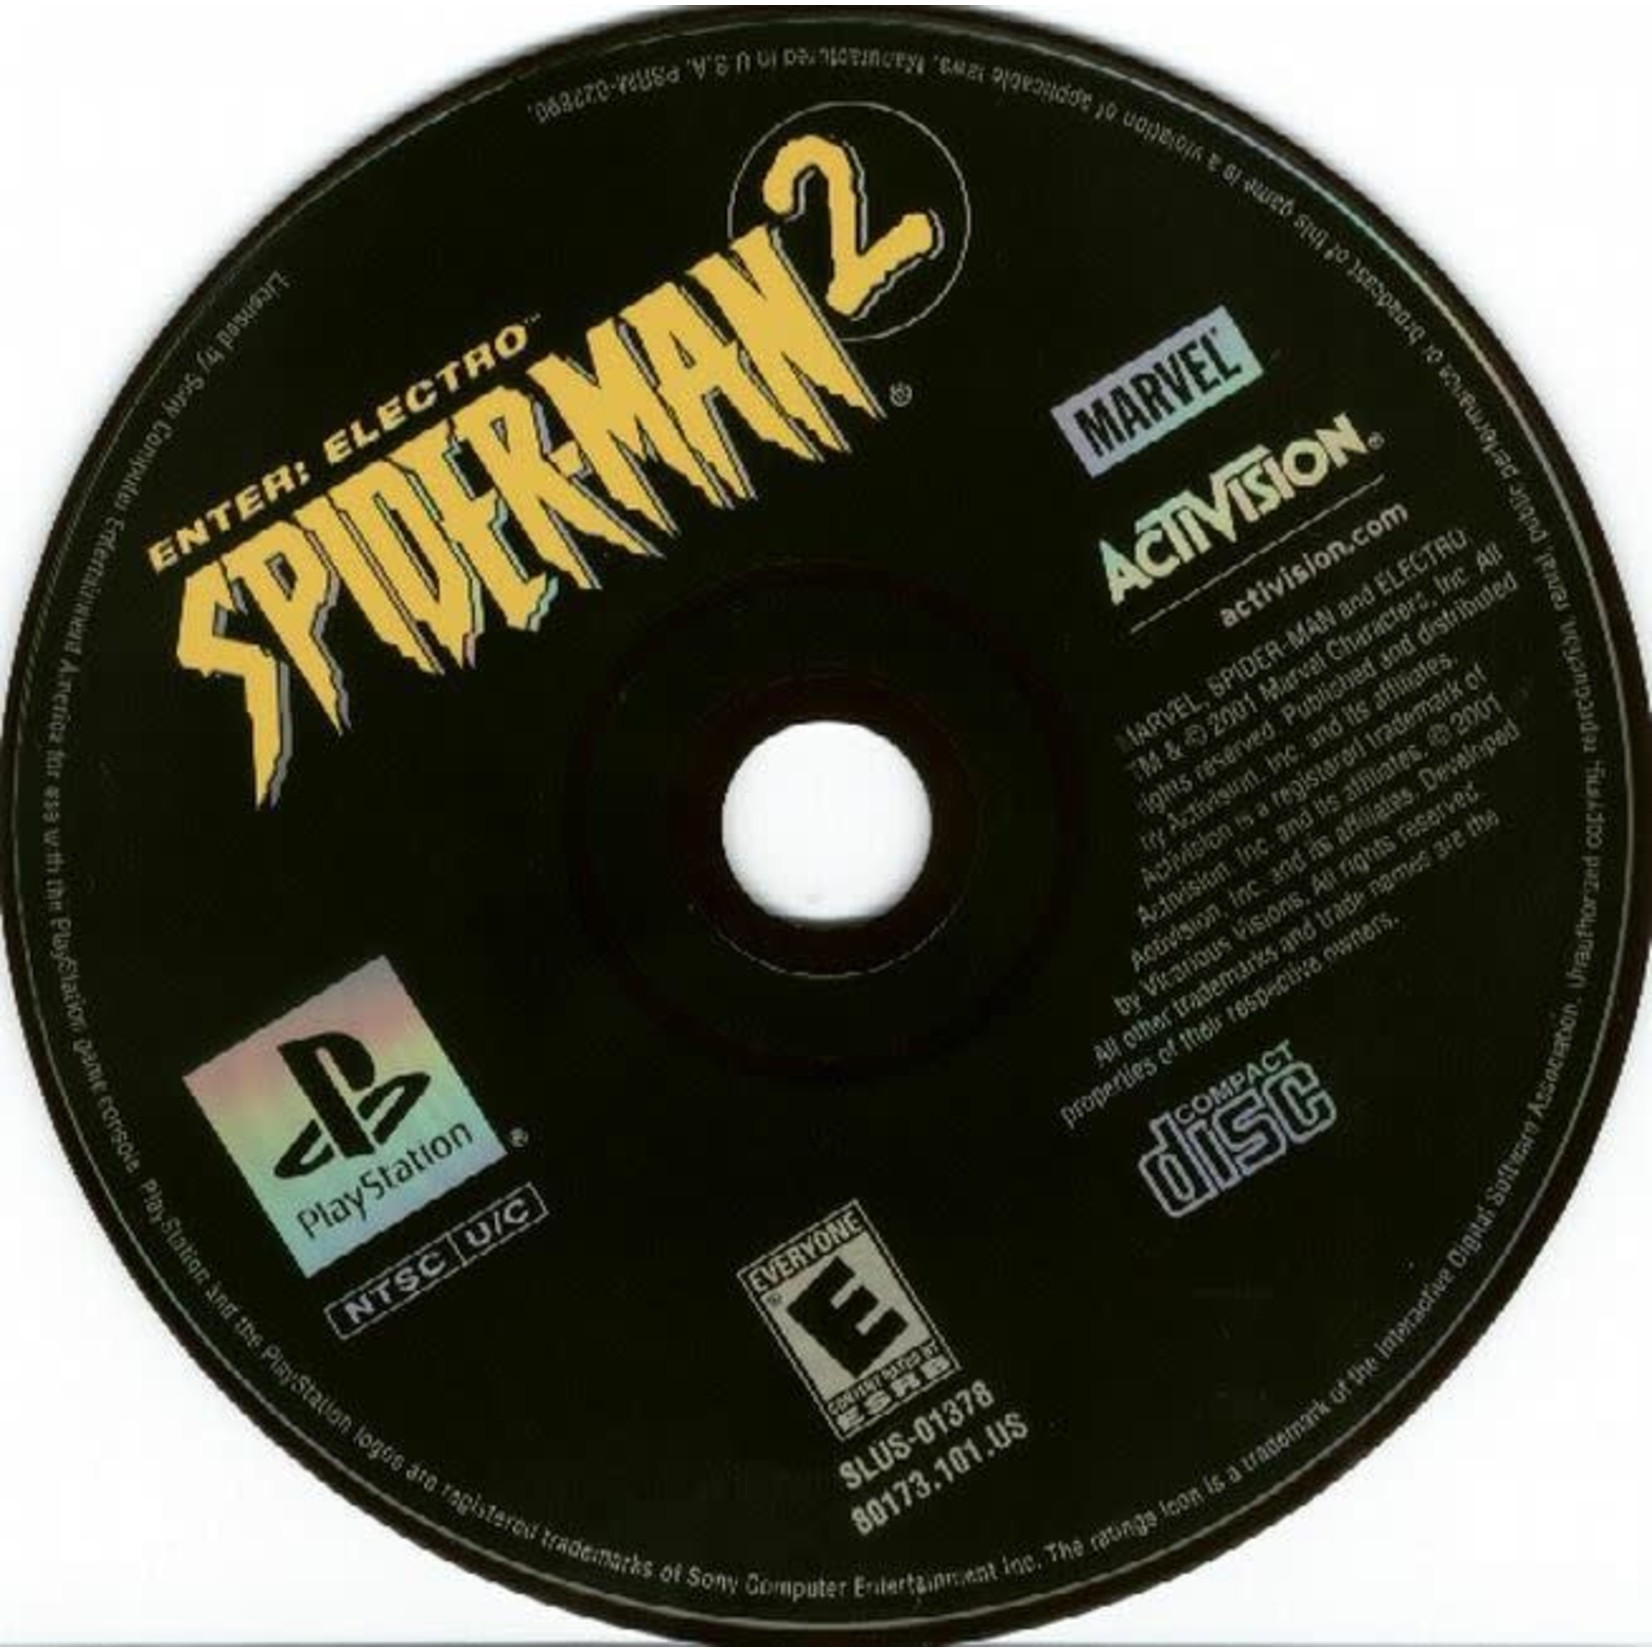 PS1U-SPIDER-MAN 2 ENTER: ELECTRO (DISC ONLY)